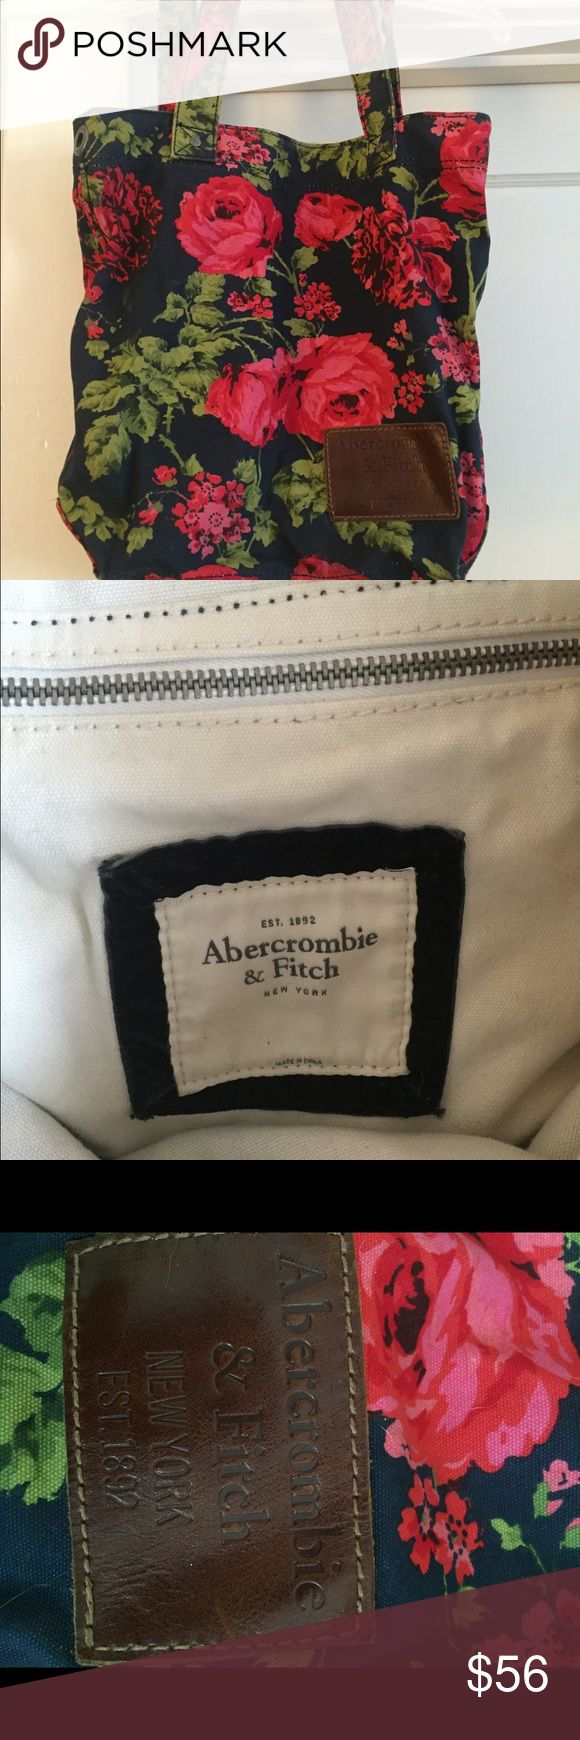 Abercrombie and Fitch Tote Red floral Canvas tote with inside zip pocket Abercrombie & Fitch Bags Totes